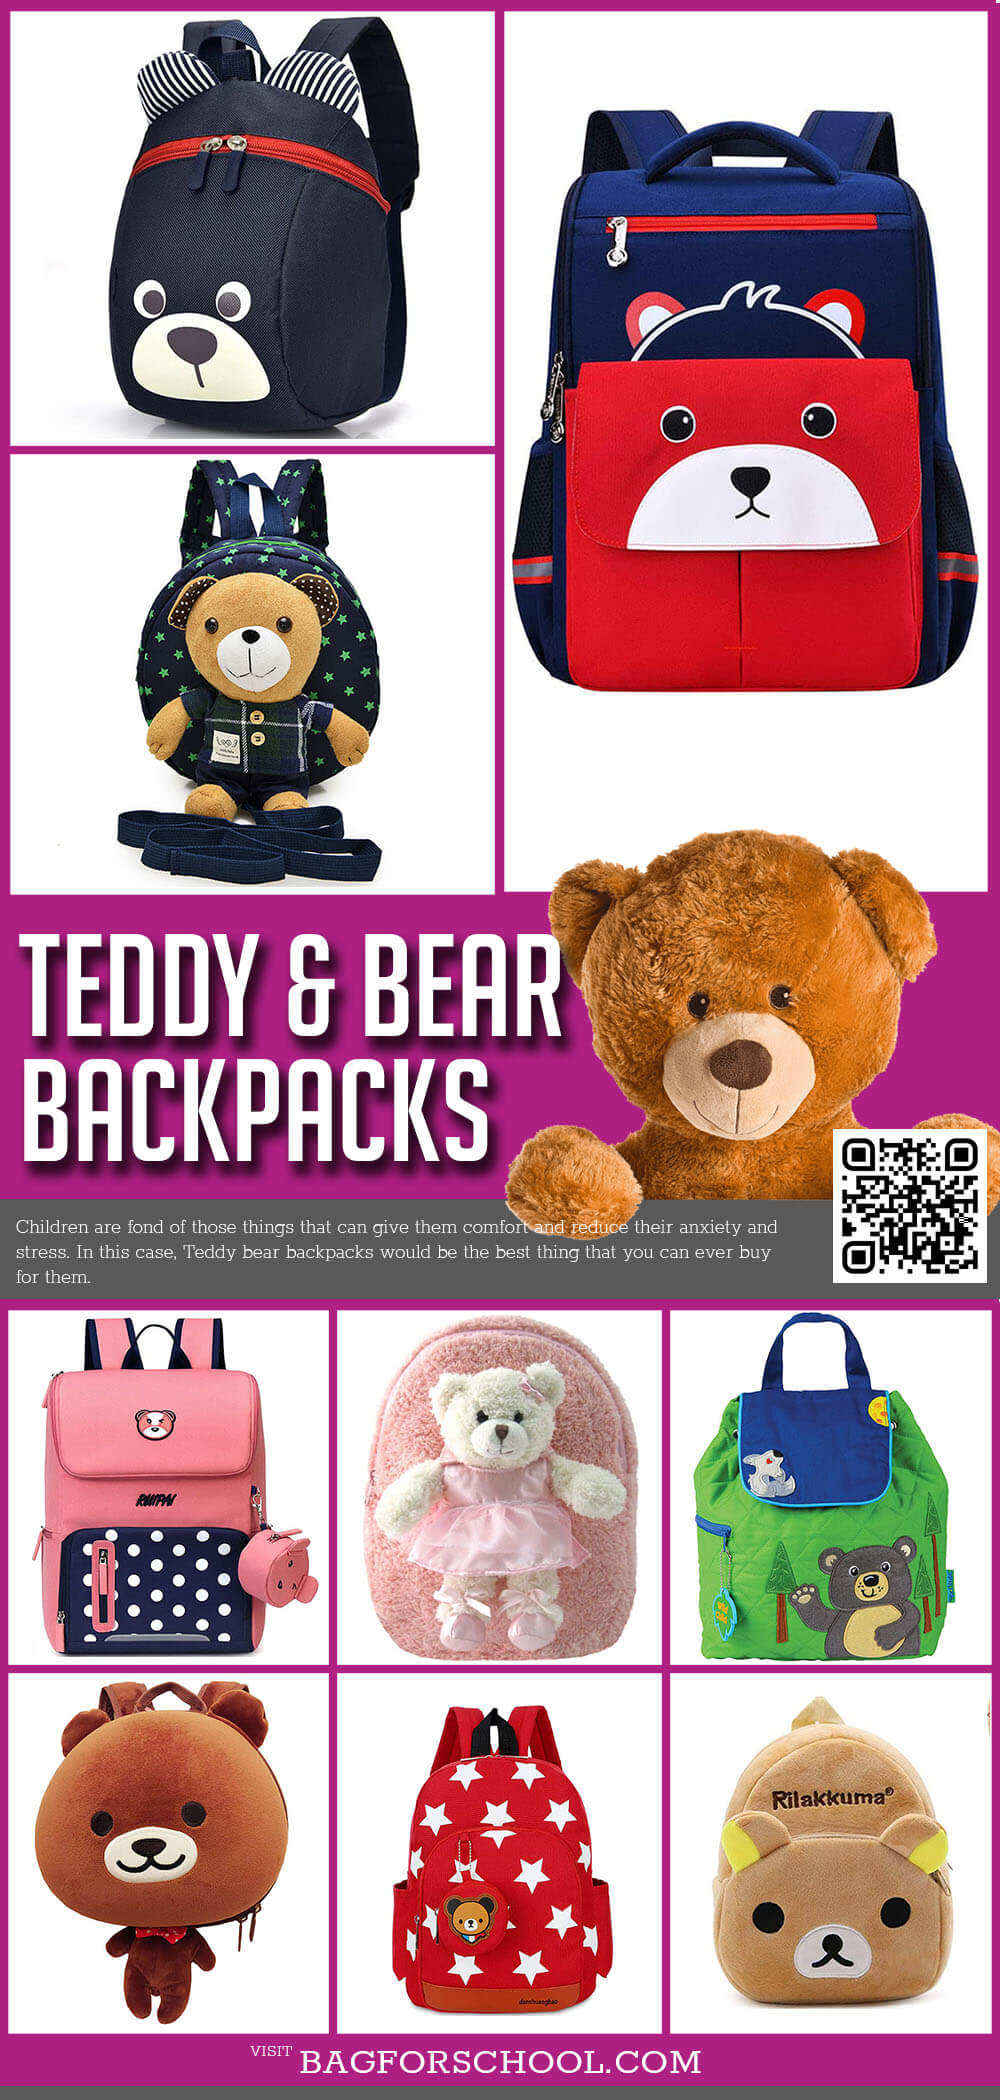 Teddy Bear Backpacks